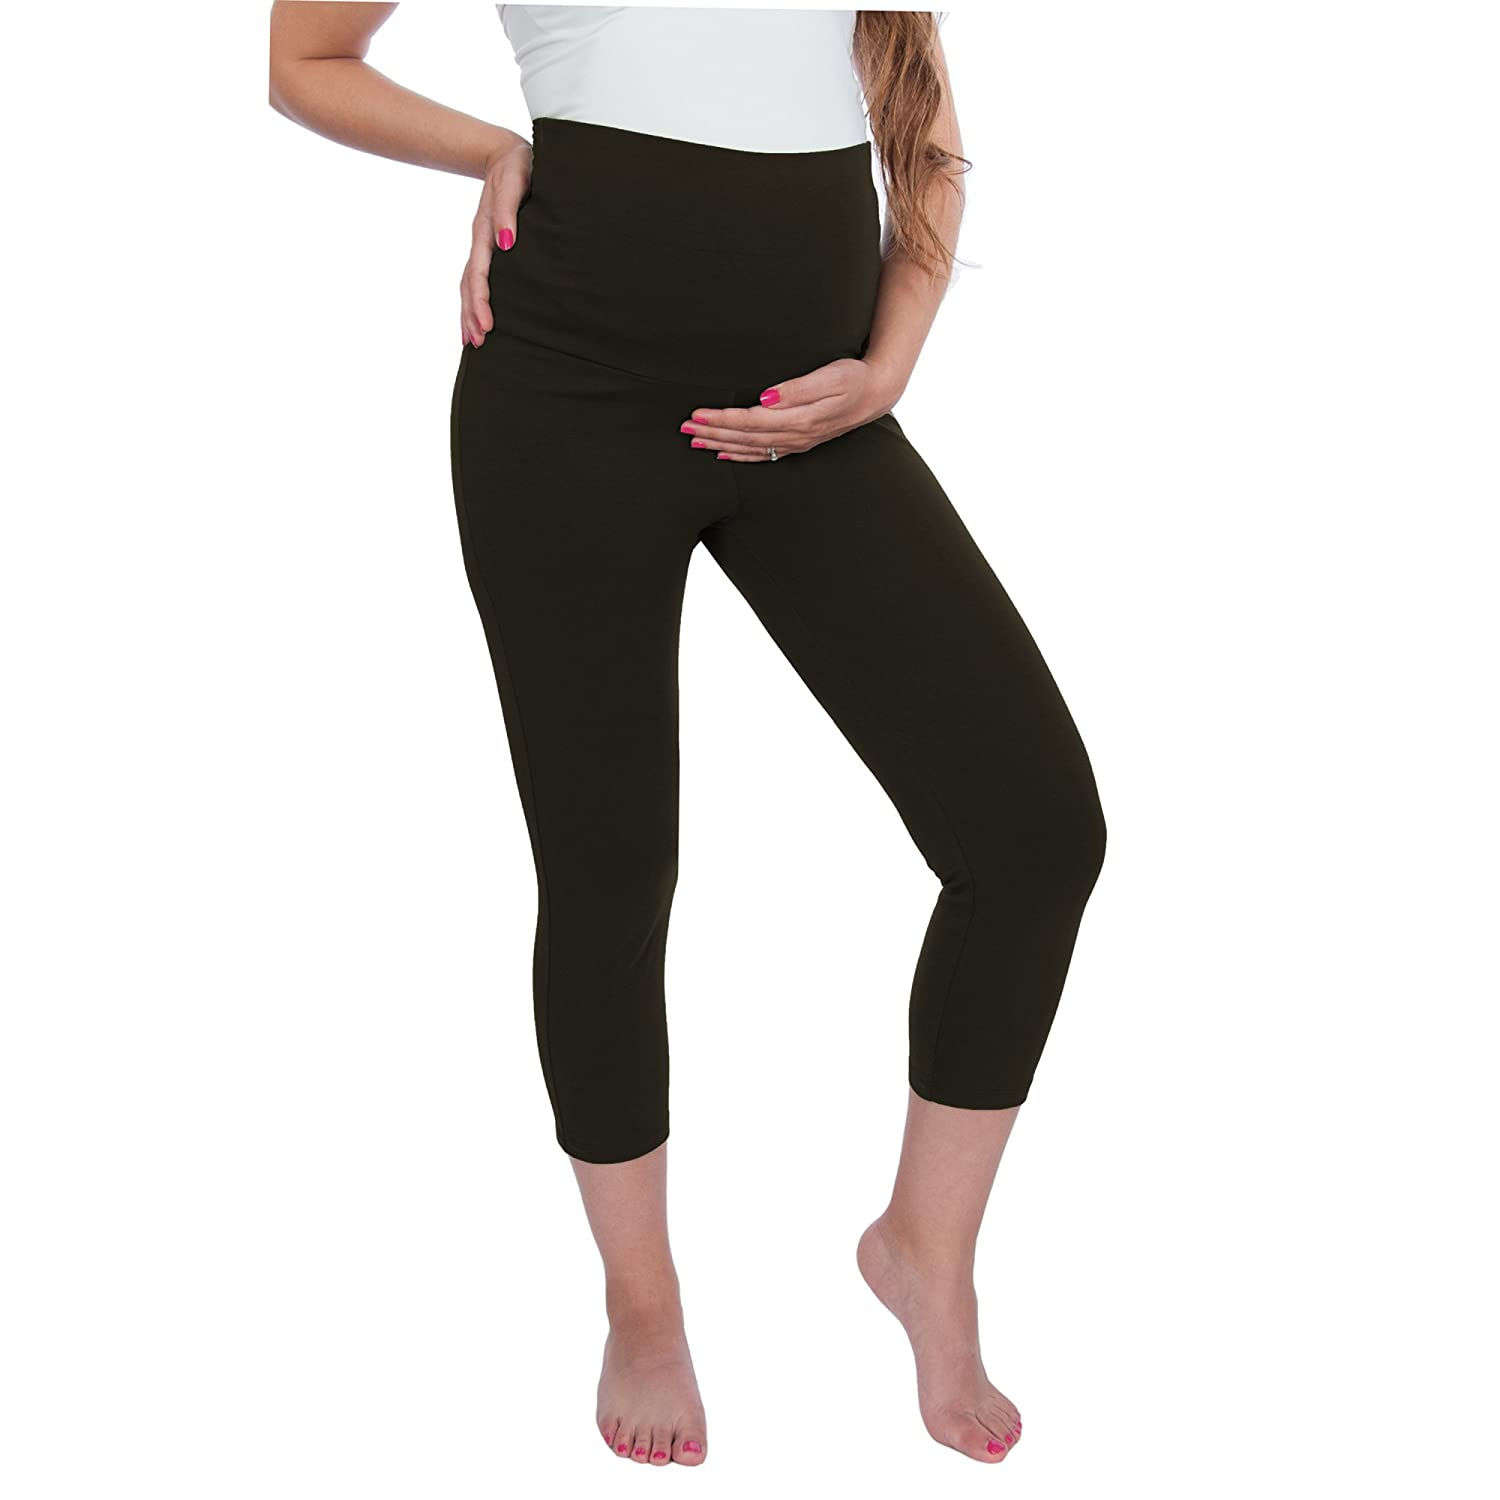 Maternity Yoga Capri Pants Leggings - Fold over waist band Black) CAPRILEGGINGBLKSML